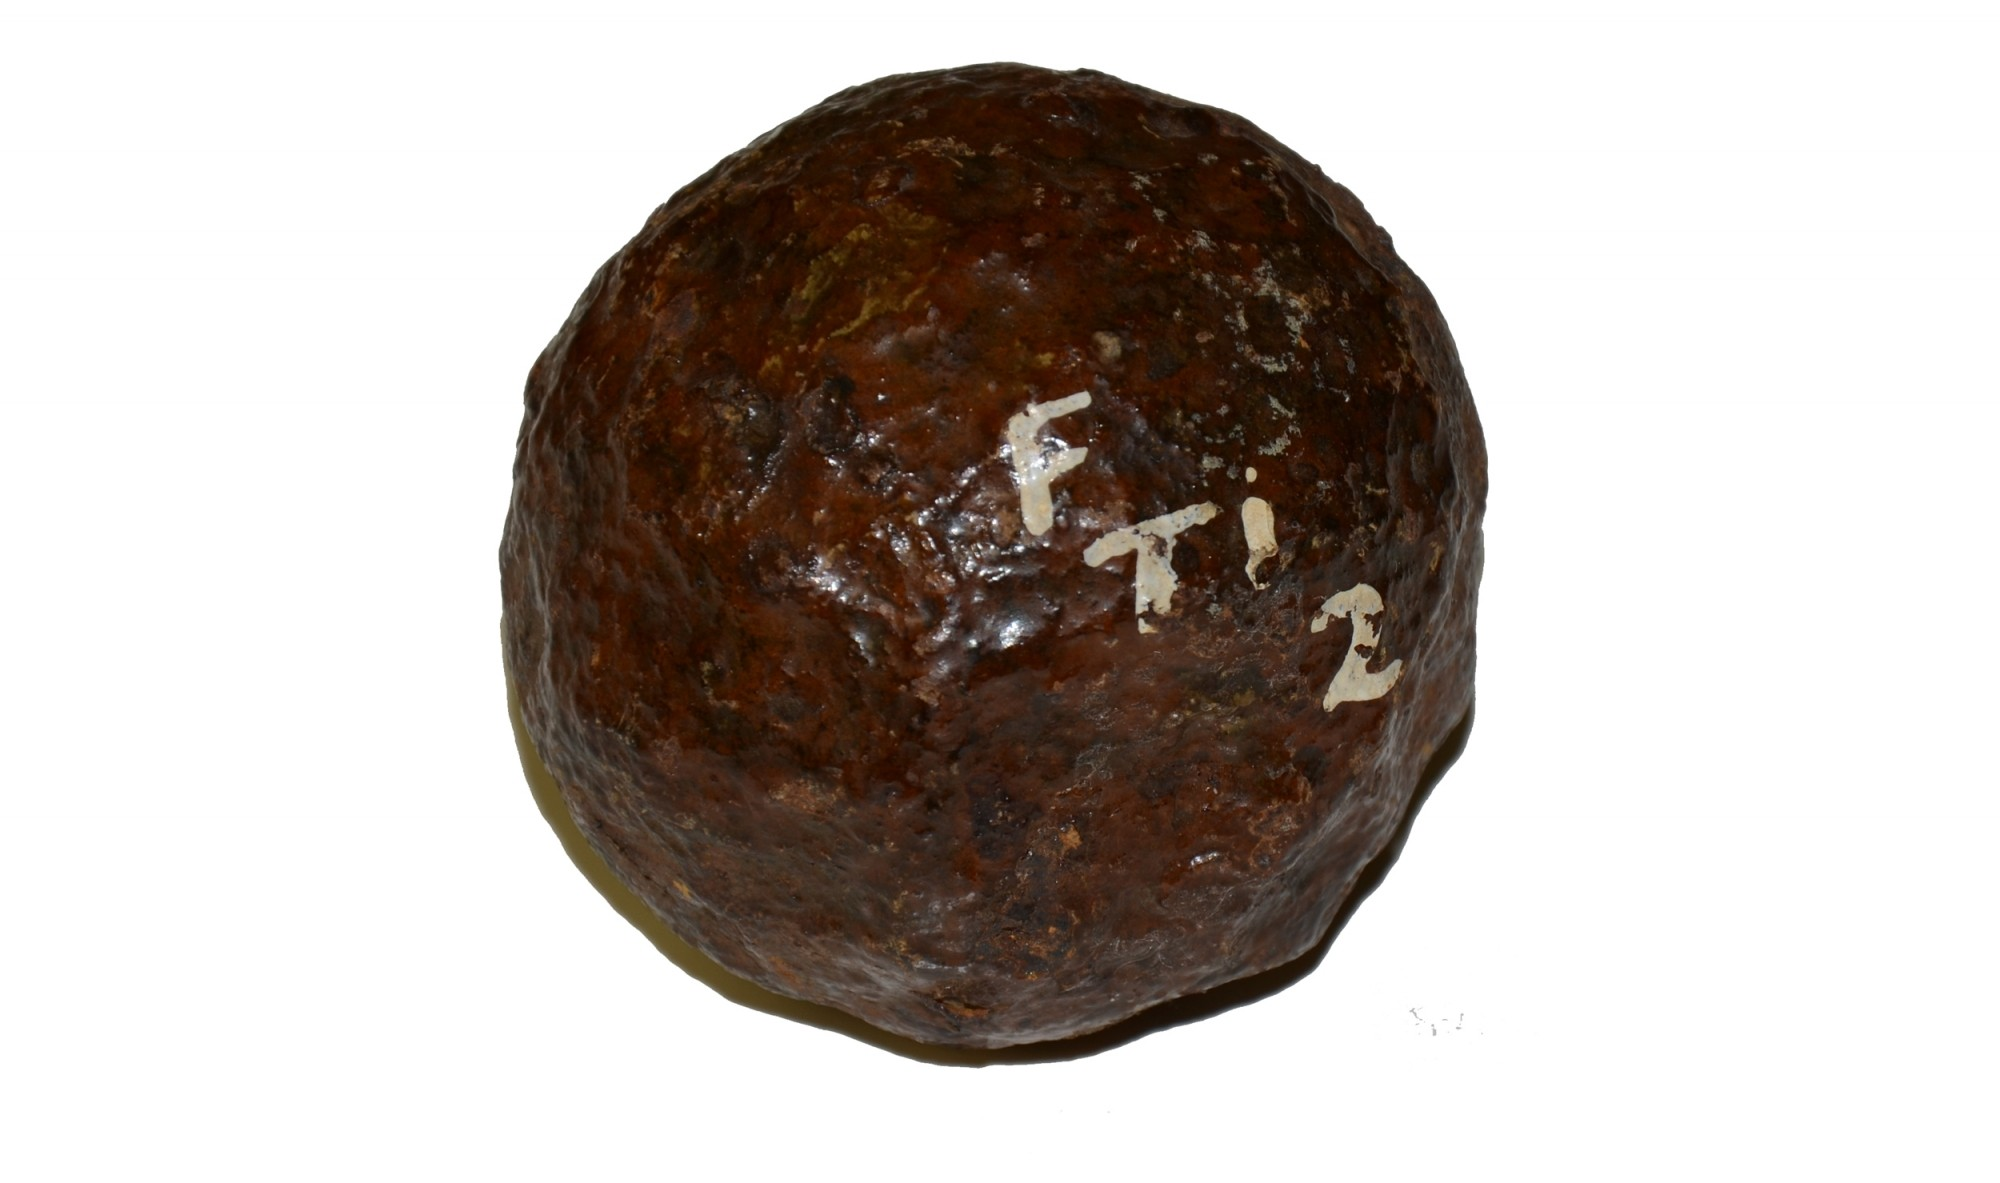 6-POUND REVOLUTIONARY WAR CANNONBALL FROM FORT TICONDEROGA, NEW YORK